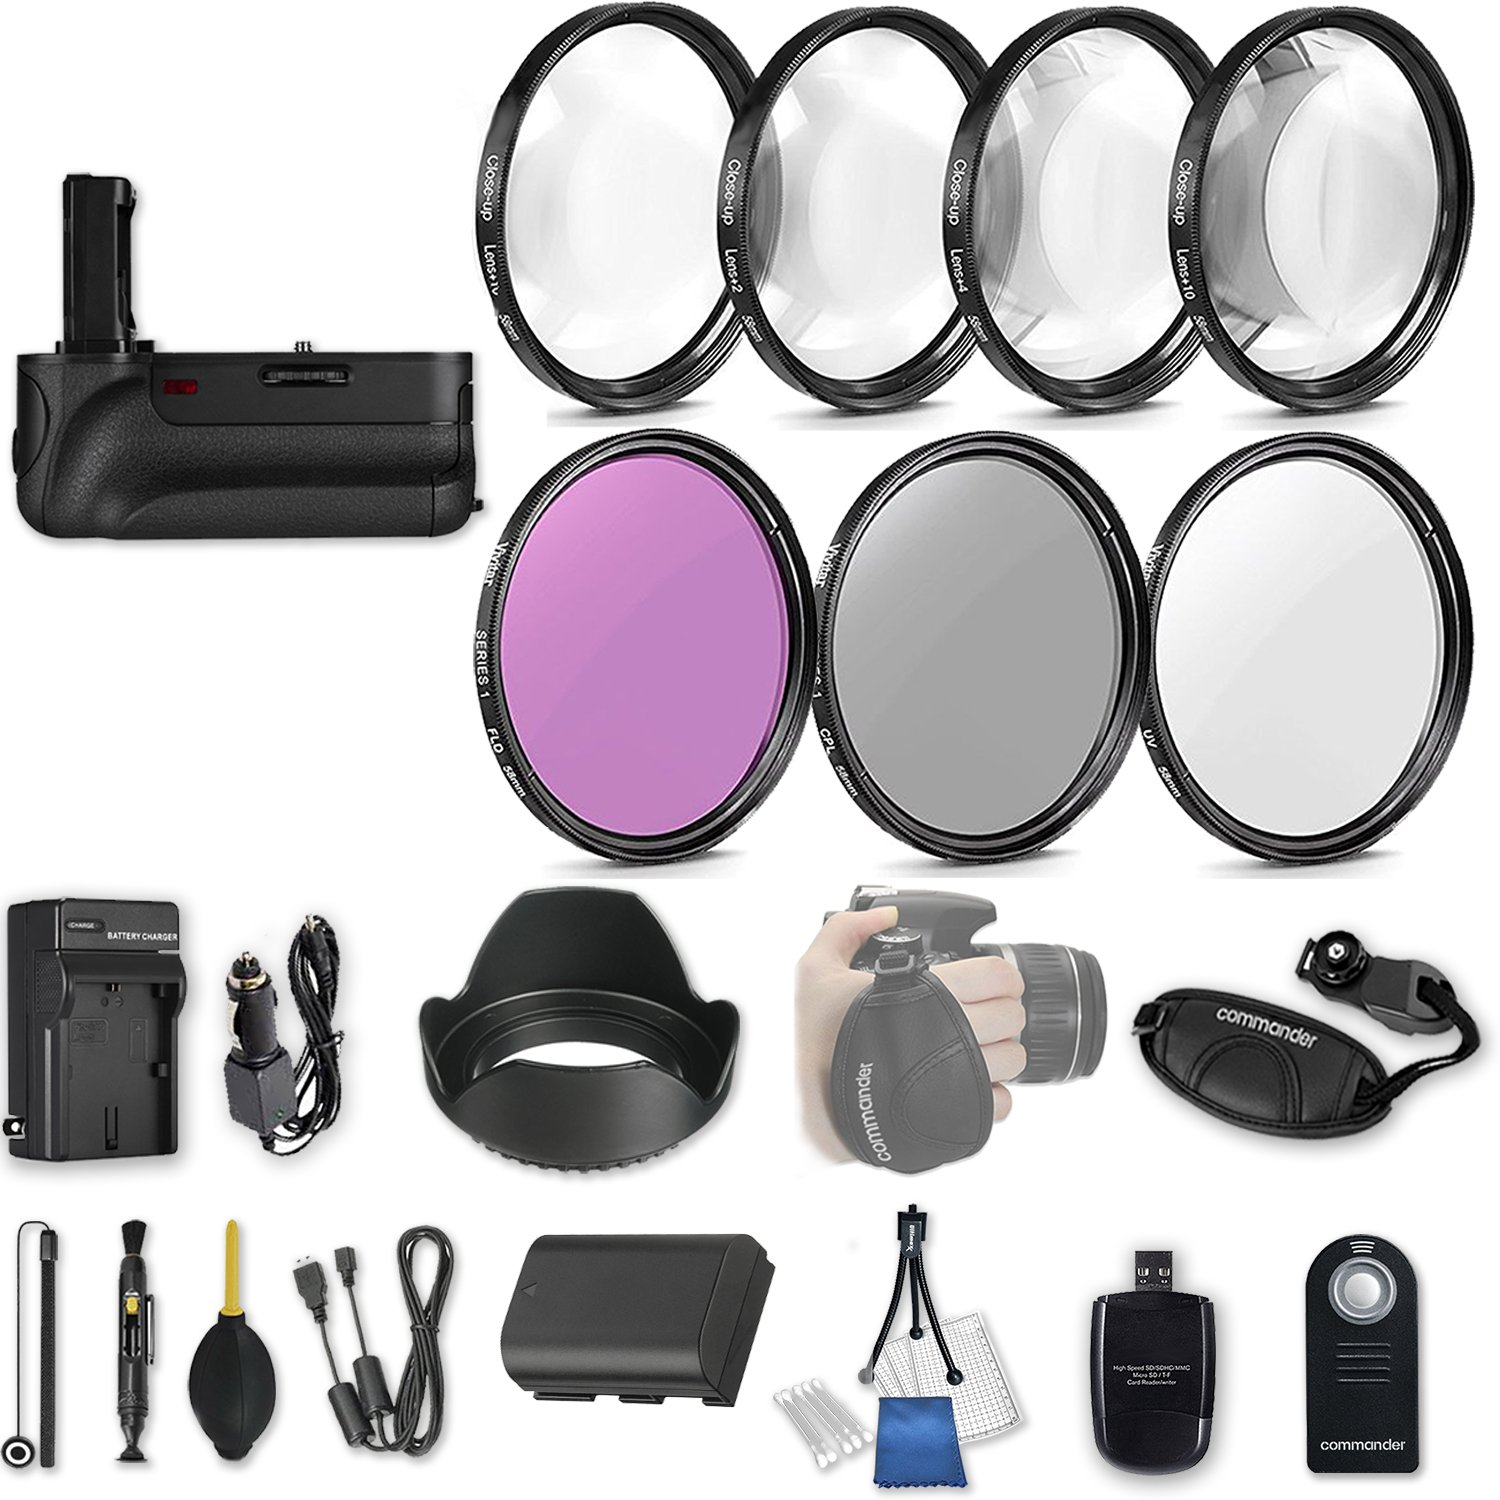 58mm 21 Pc Accessory Kit for Canon EOS Rebel 70D, 80D DSLRs with Battery Grip, UV CPL FLD Filters, & 4 Piece Macro Close-Up Set, Battery, and More by 33rd Street